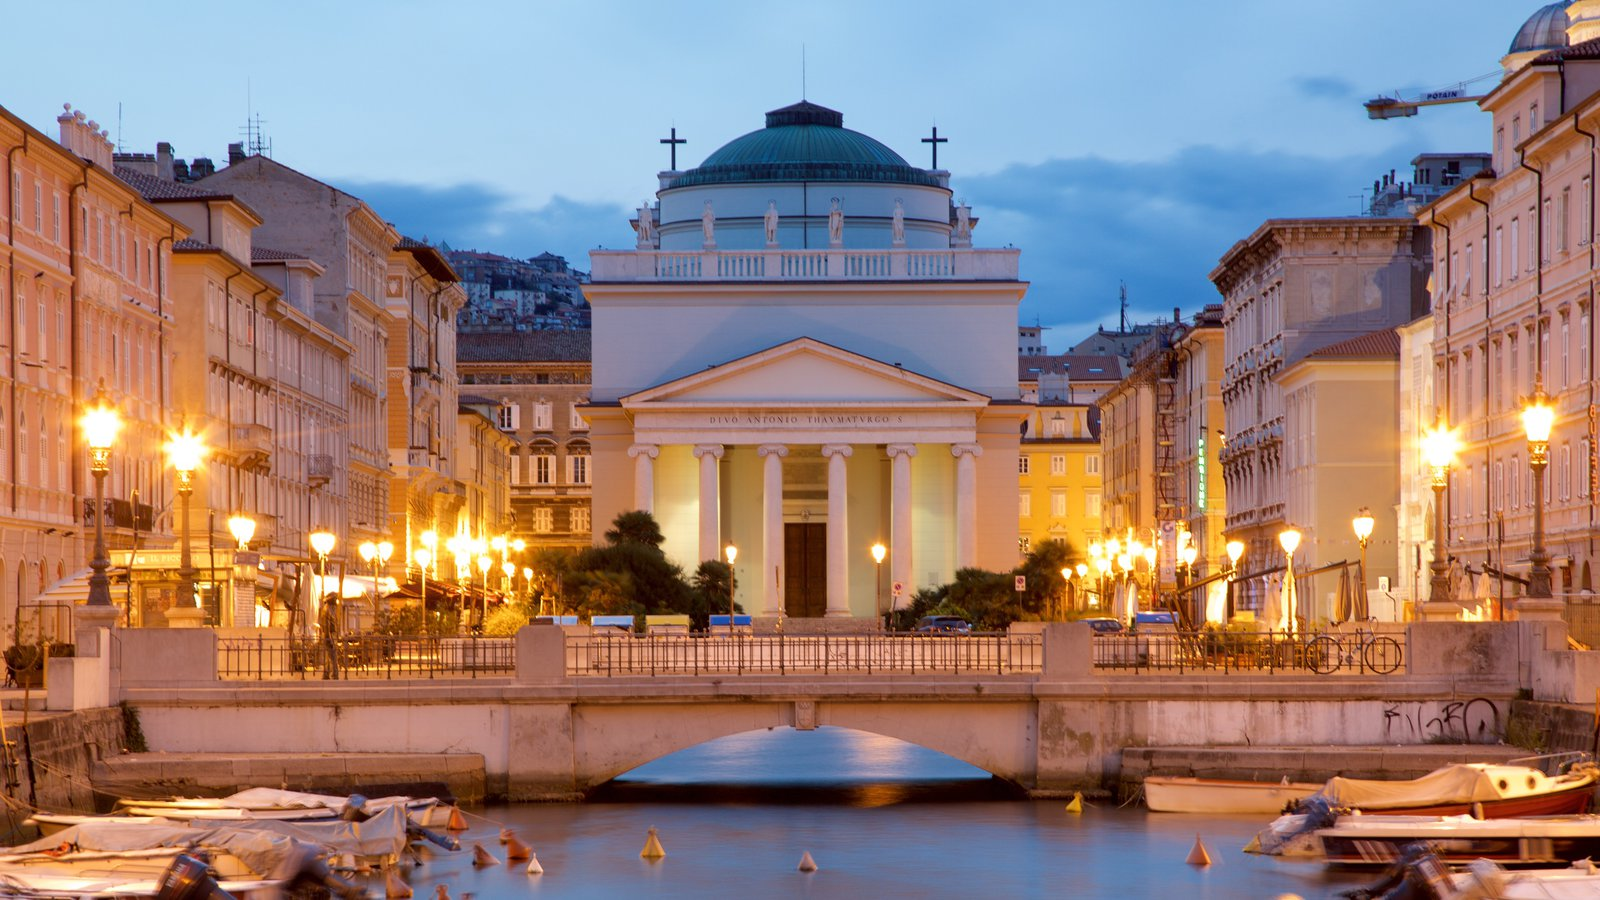 Trieste which includes a river or creek, a church or cathedral and boating